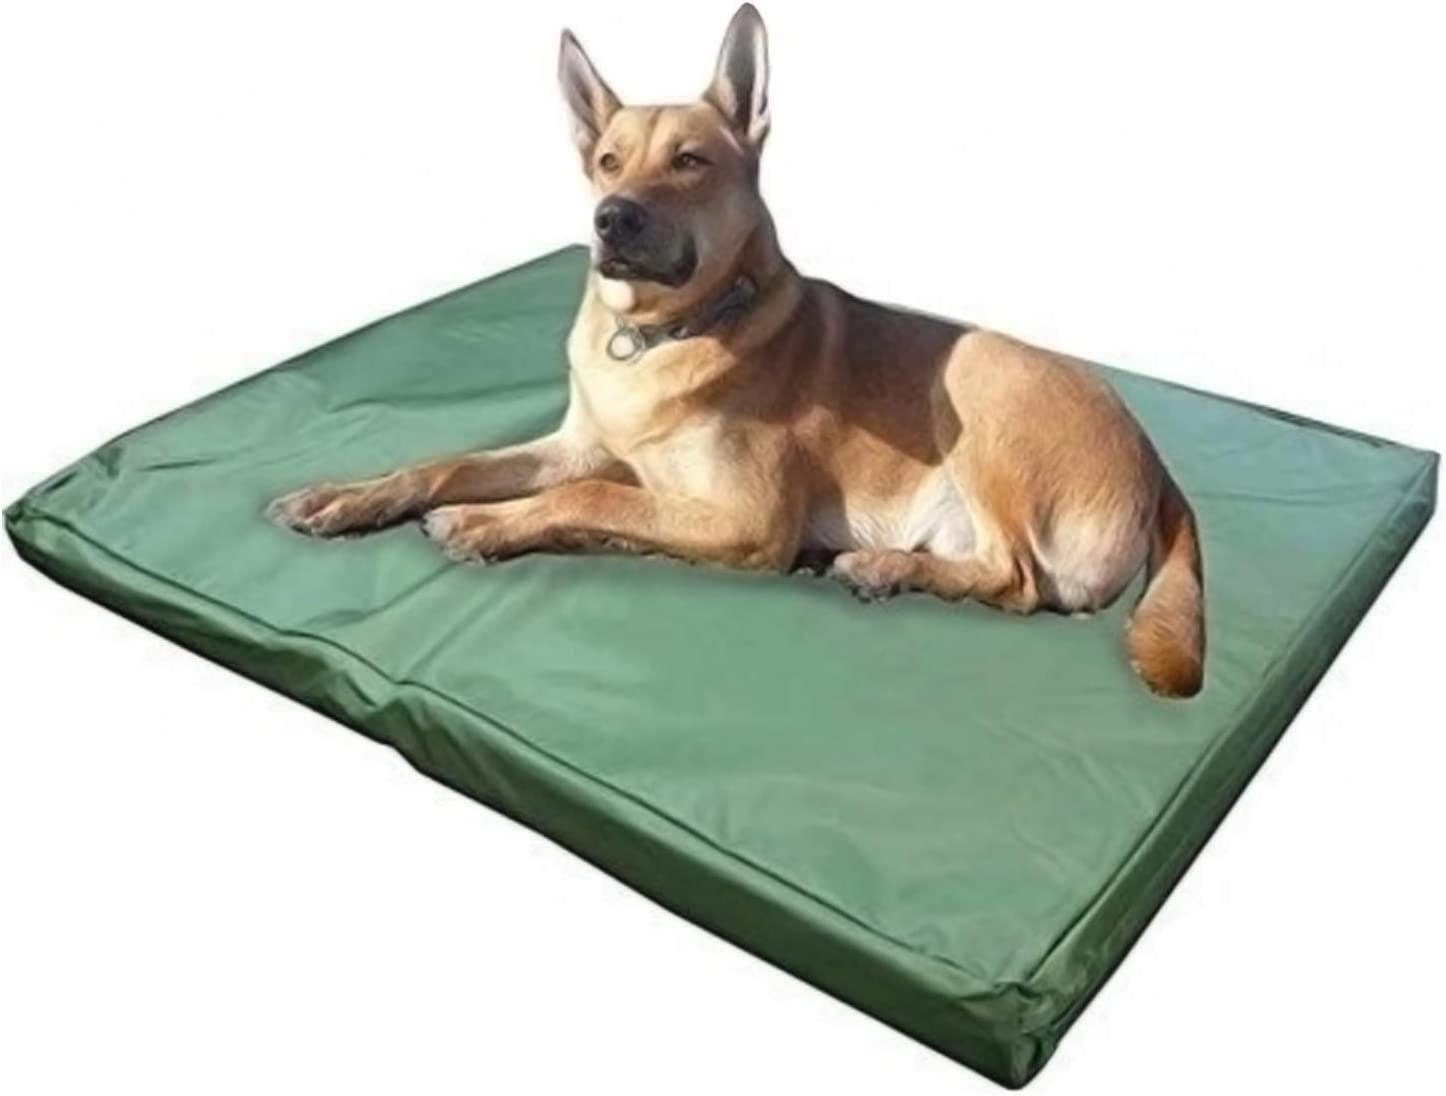 ADOV DOG Bed Medium, Waterproof Pet Bed, Premium Double-Sided and Washable Cover, Orthopaedic Foam Dog Bed Mat, Medium Kennel Pads for Dogs, Cats, Other Small and Large Sized Pets - (84 x 54cm)